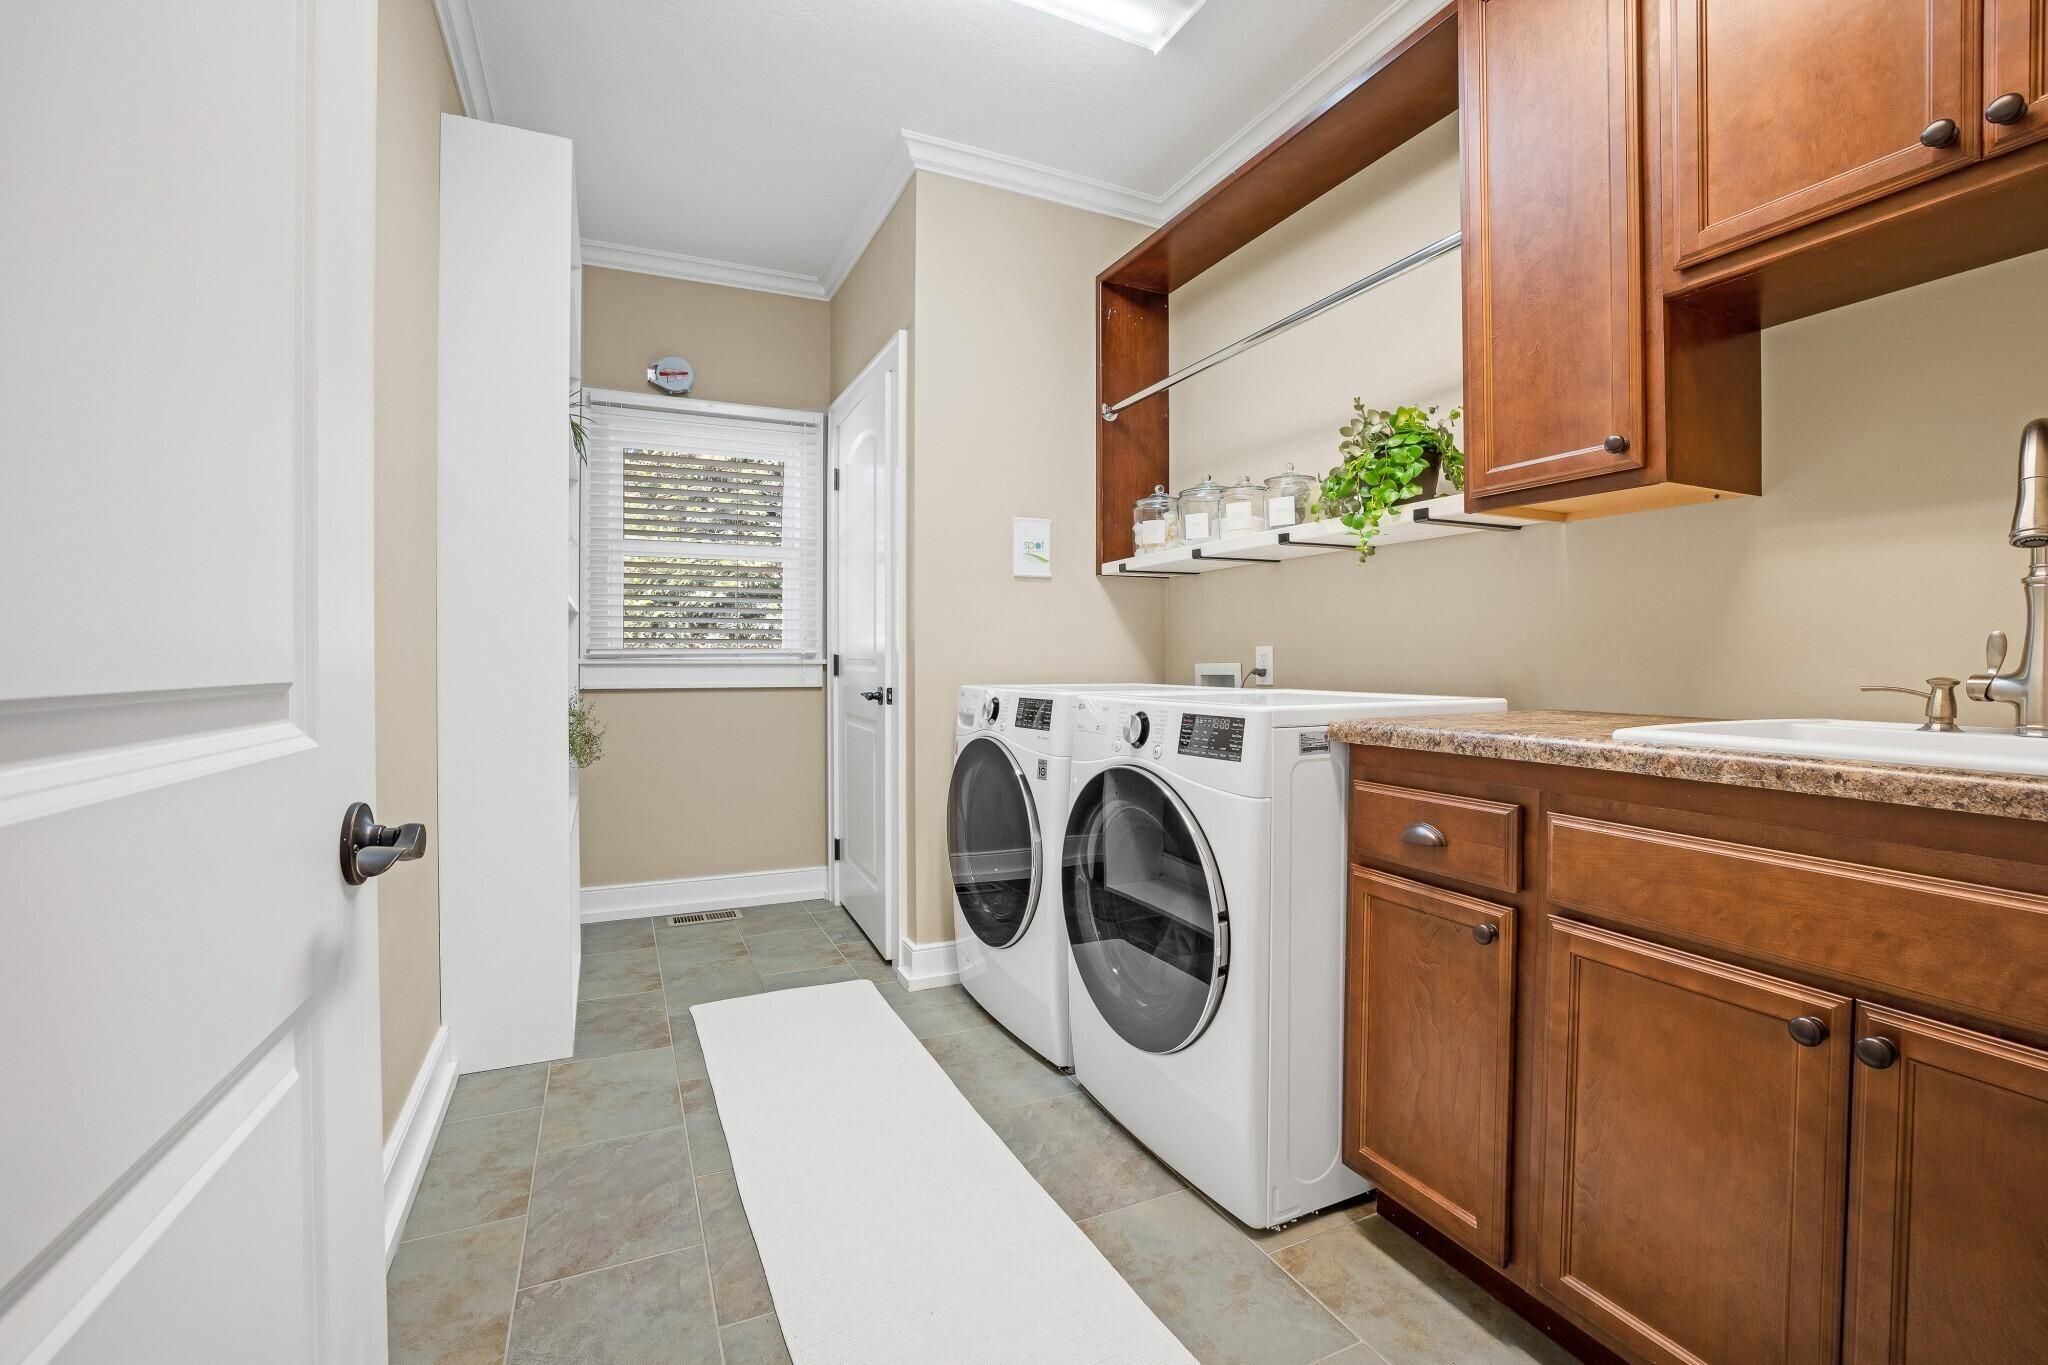 Laundry Room w/ Cabinets and Sink